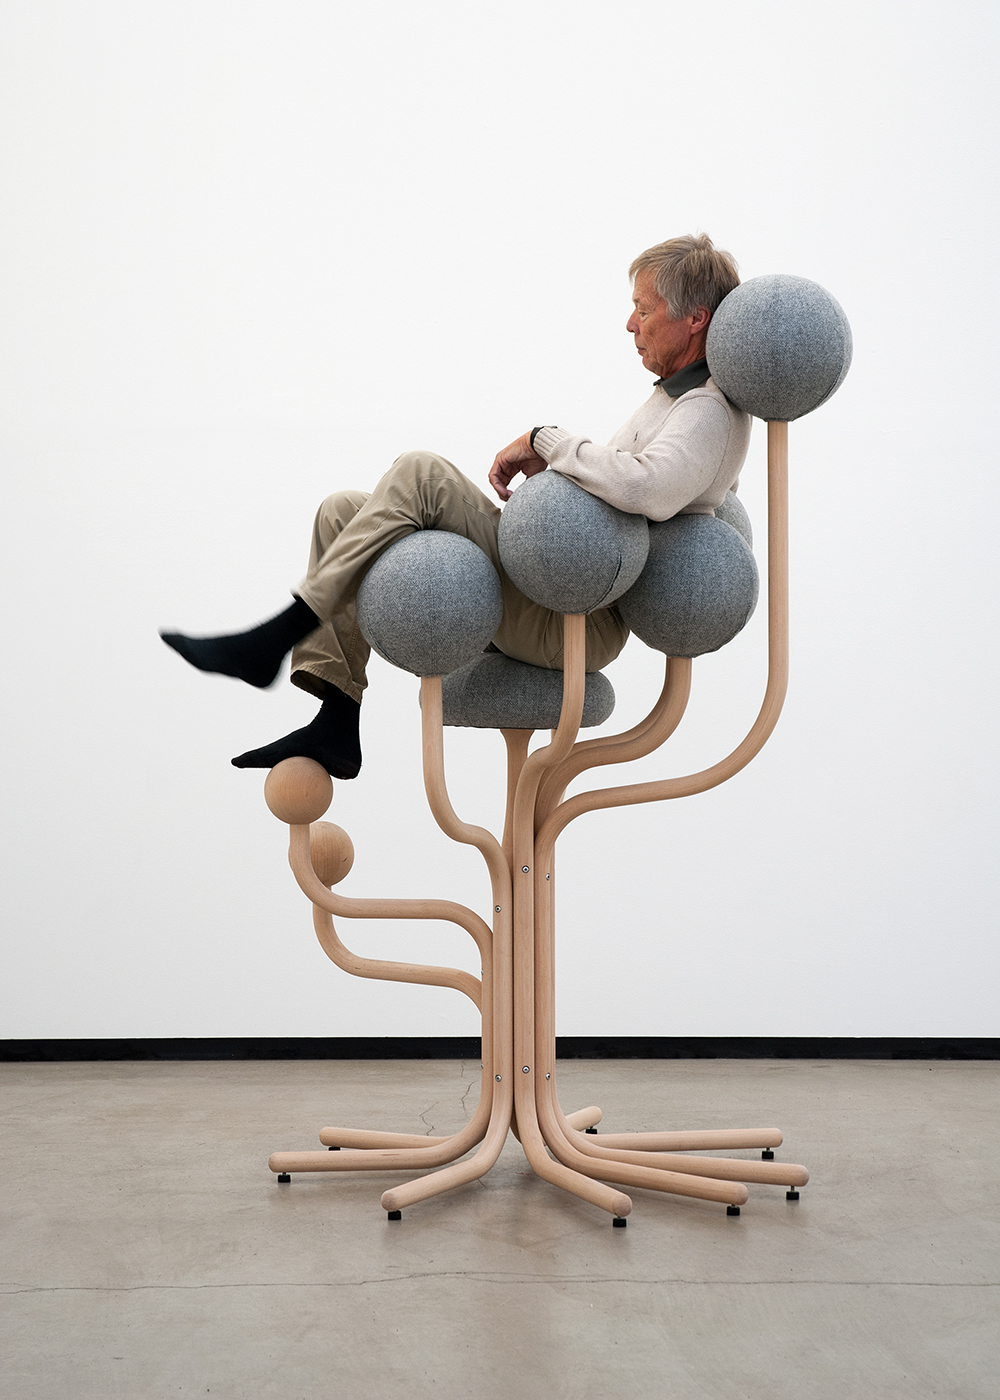 Rethink Sitting The Re launch of the Iconic Globe Garden Chair